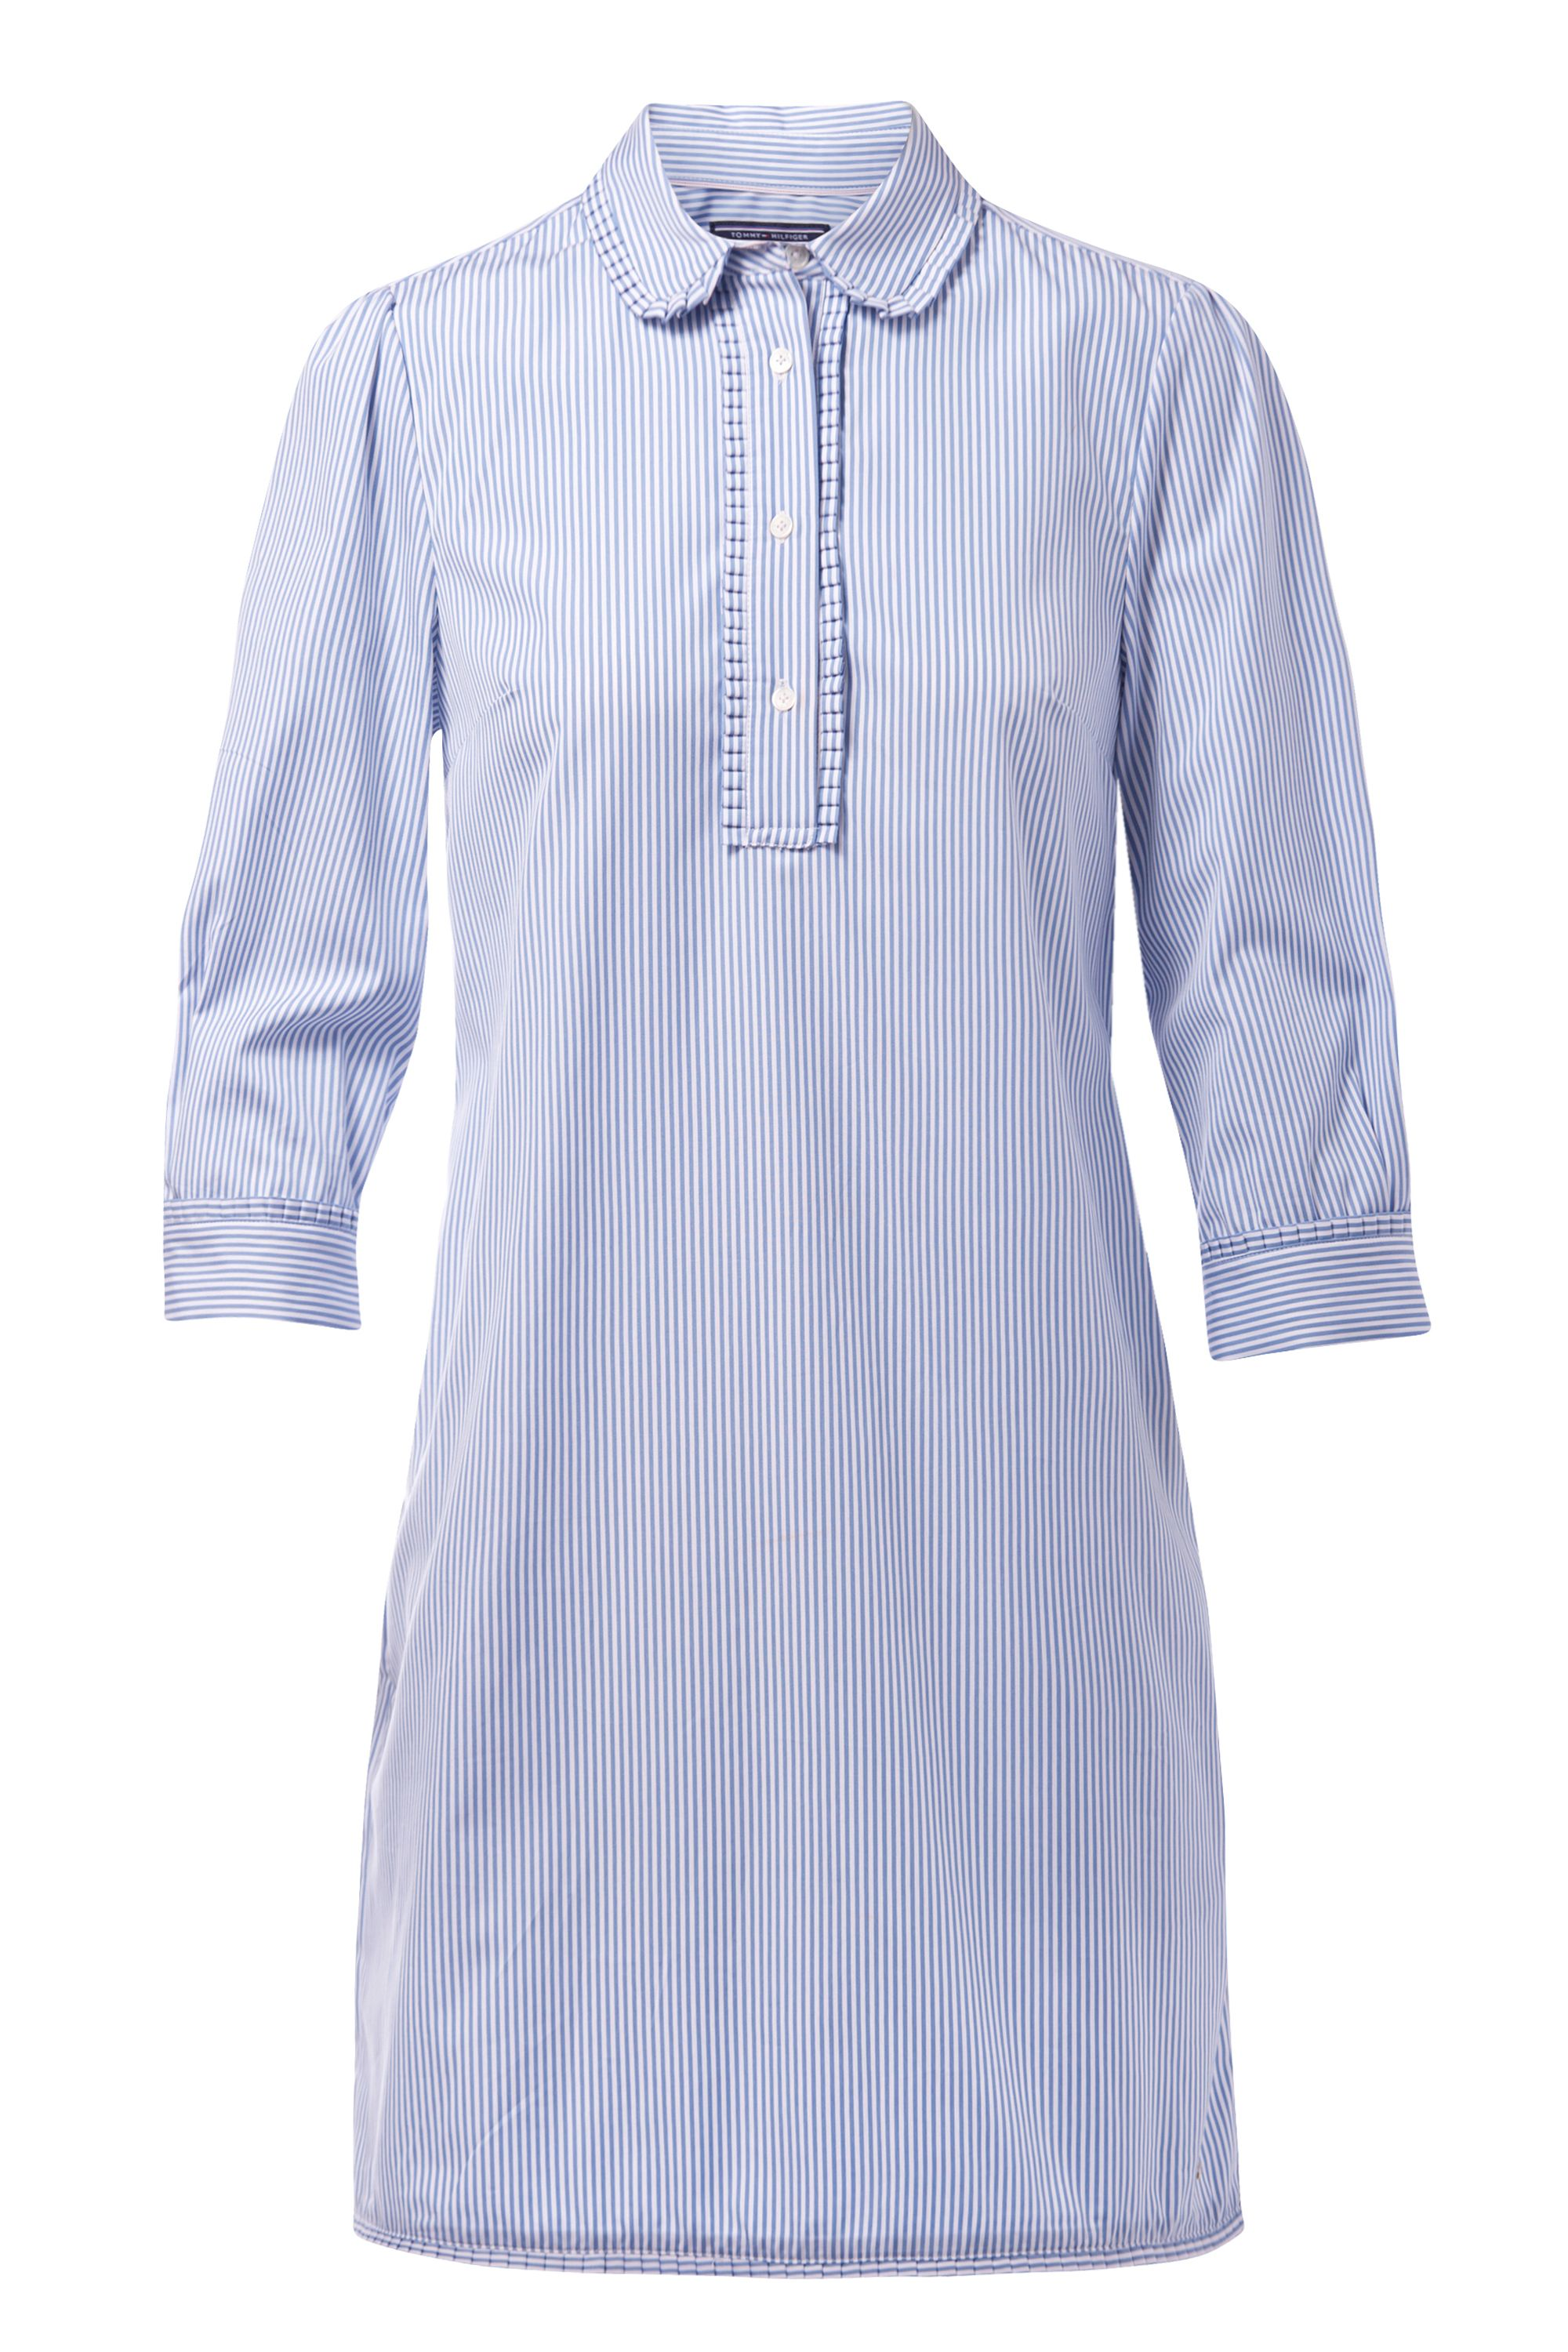 Tommy Hilfiger Annie Dress, Blue